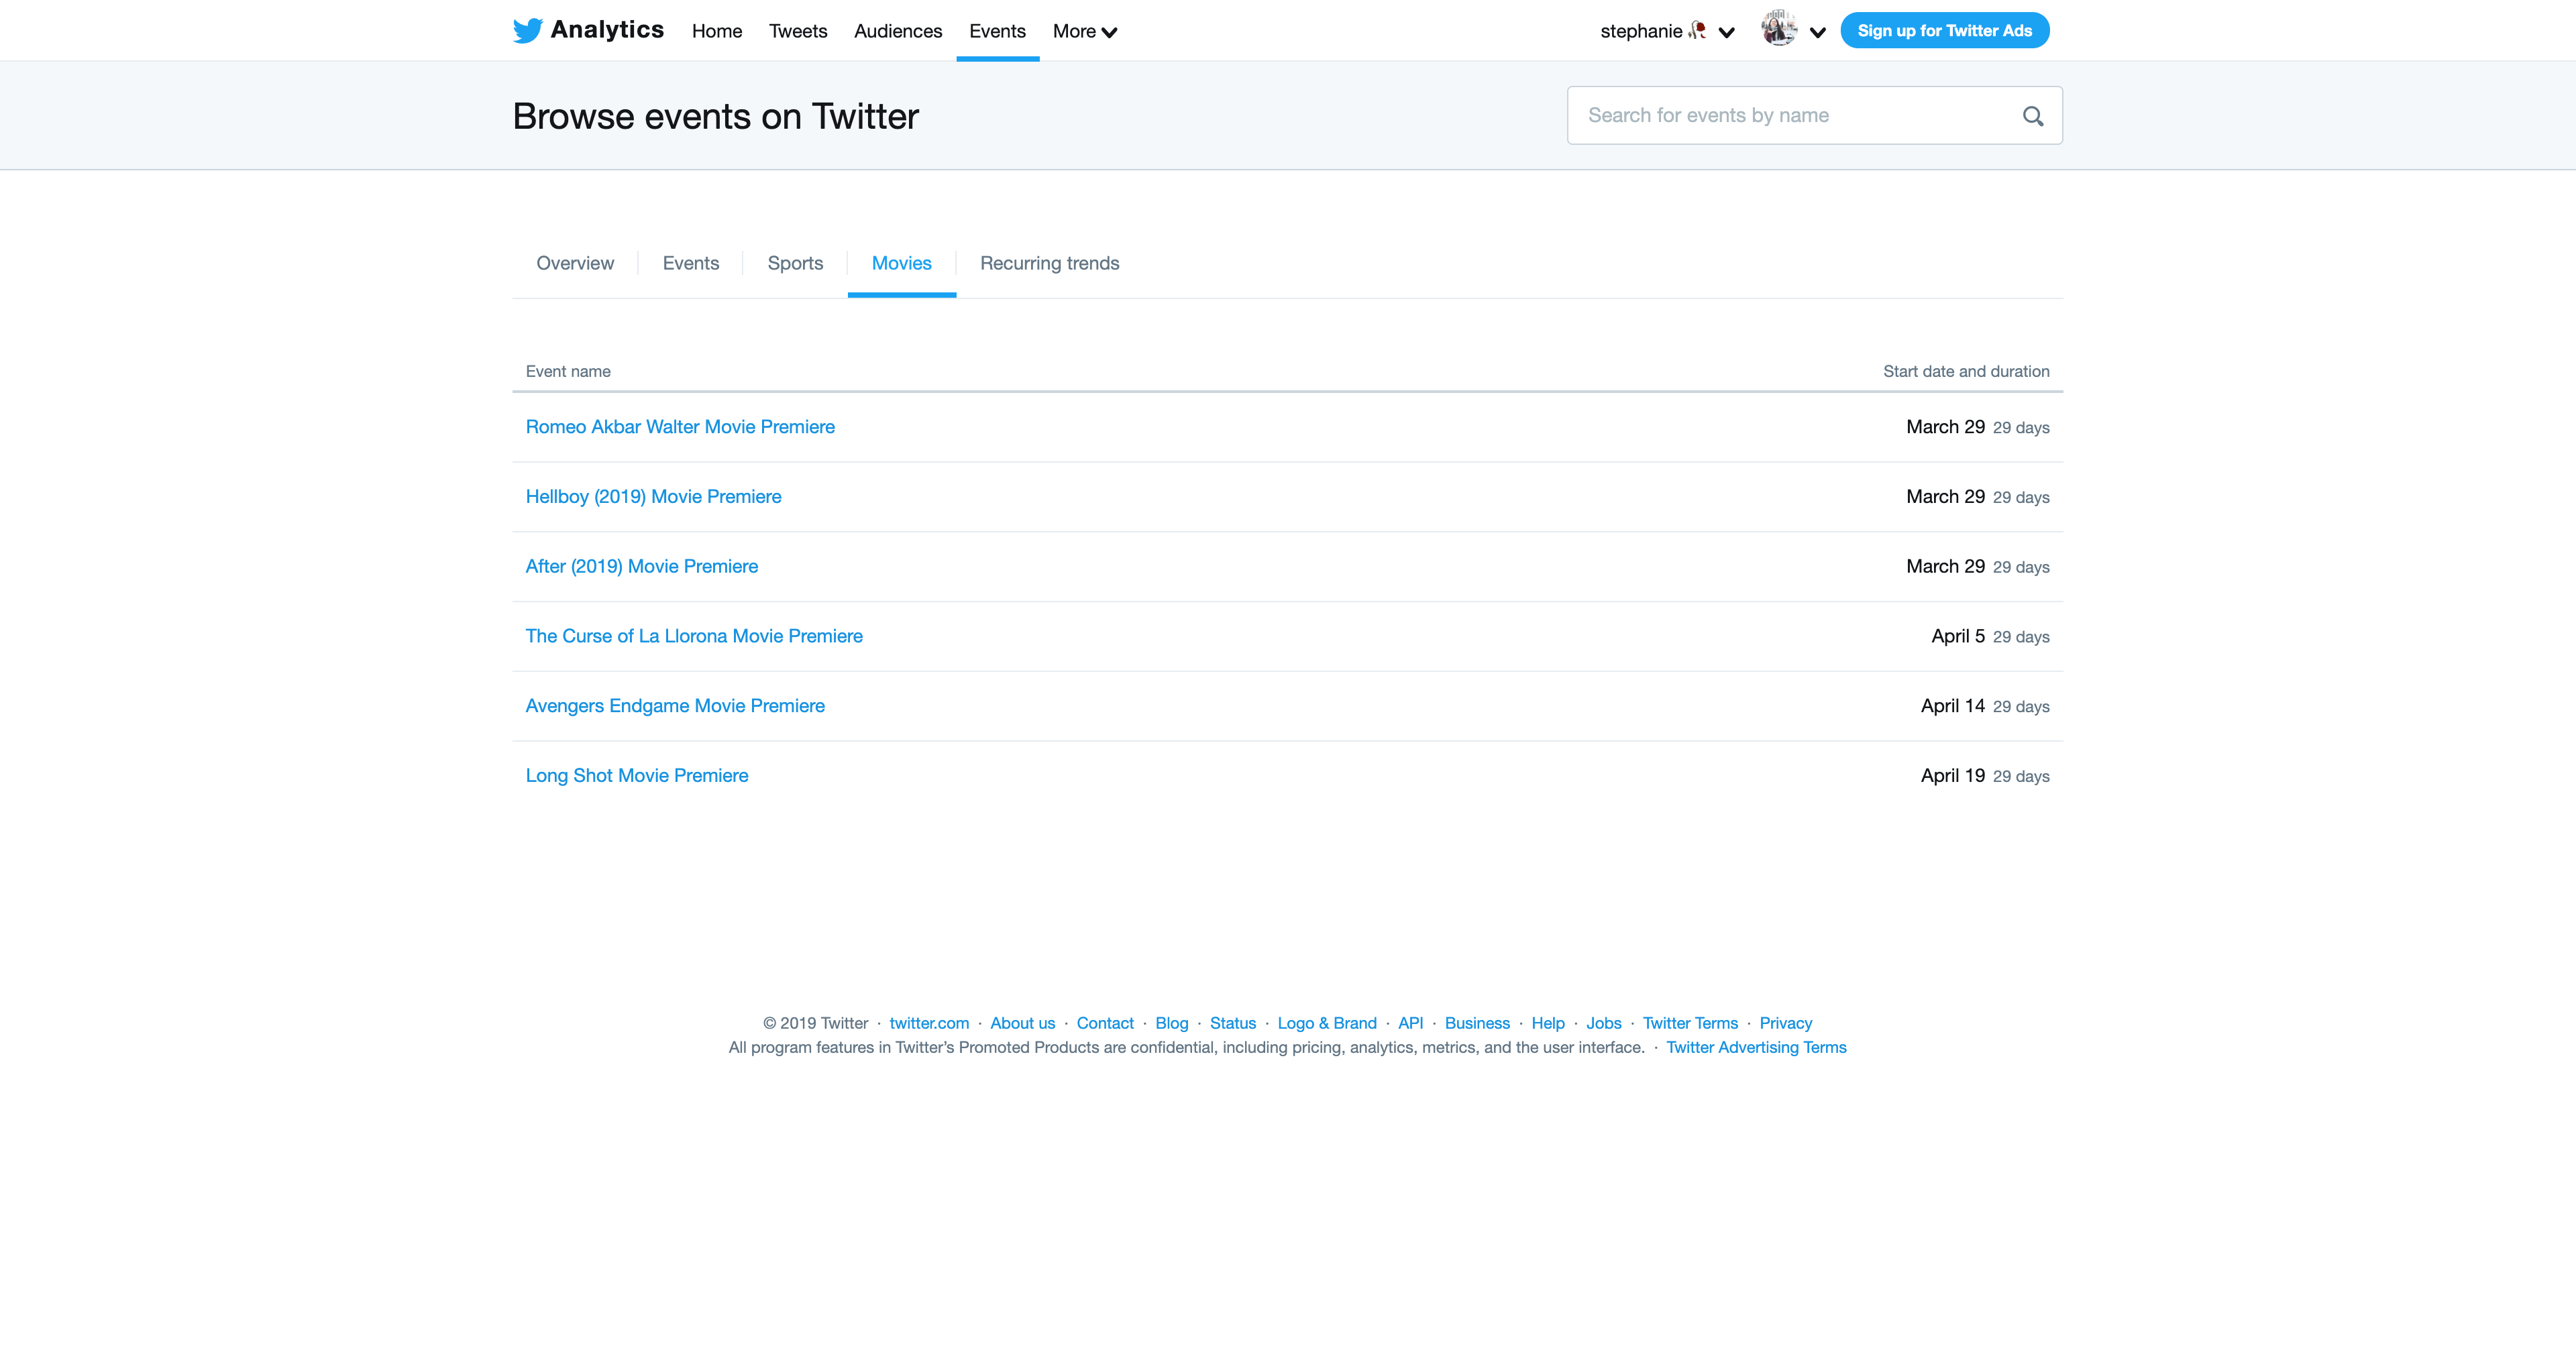 Browse Events by Twitter Analytics